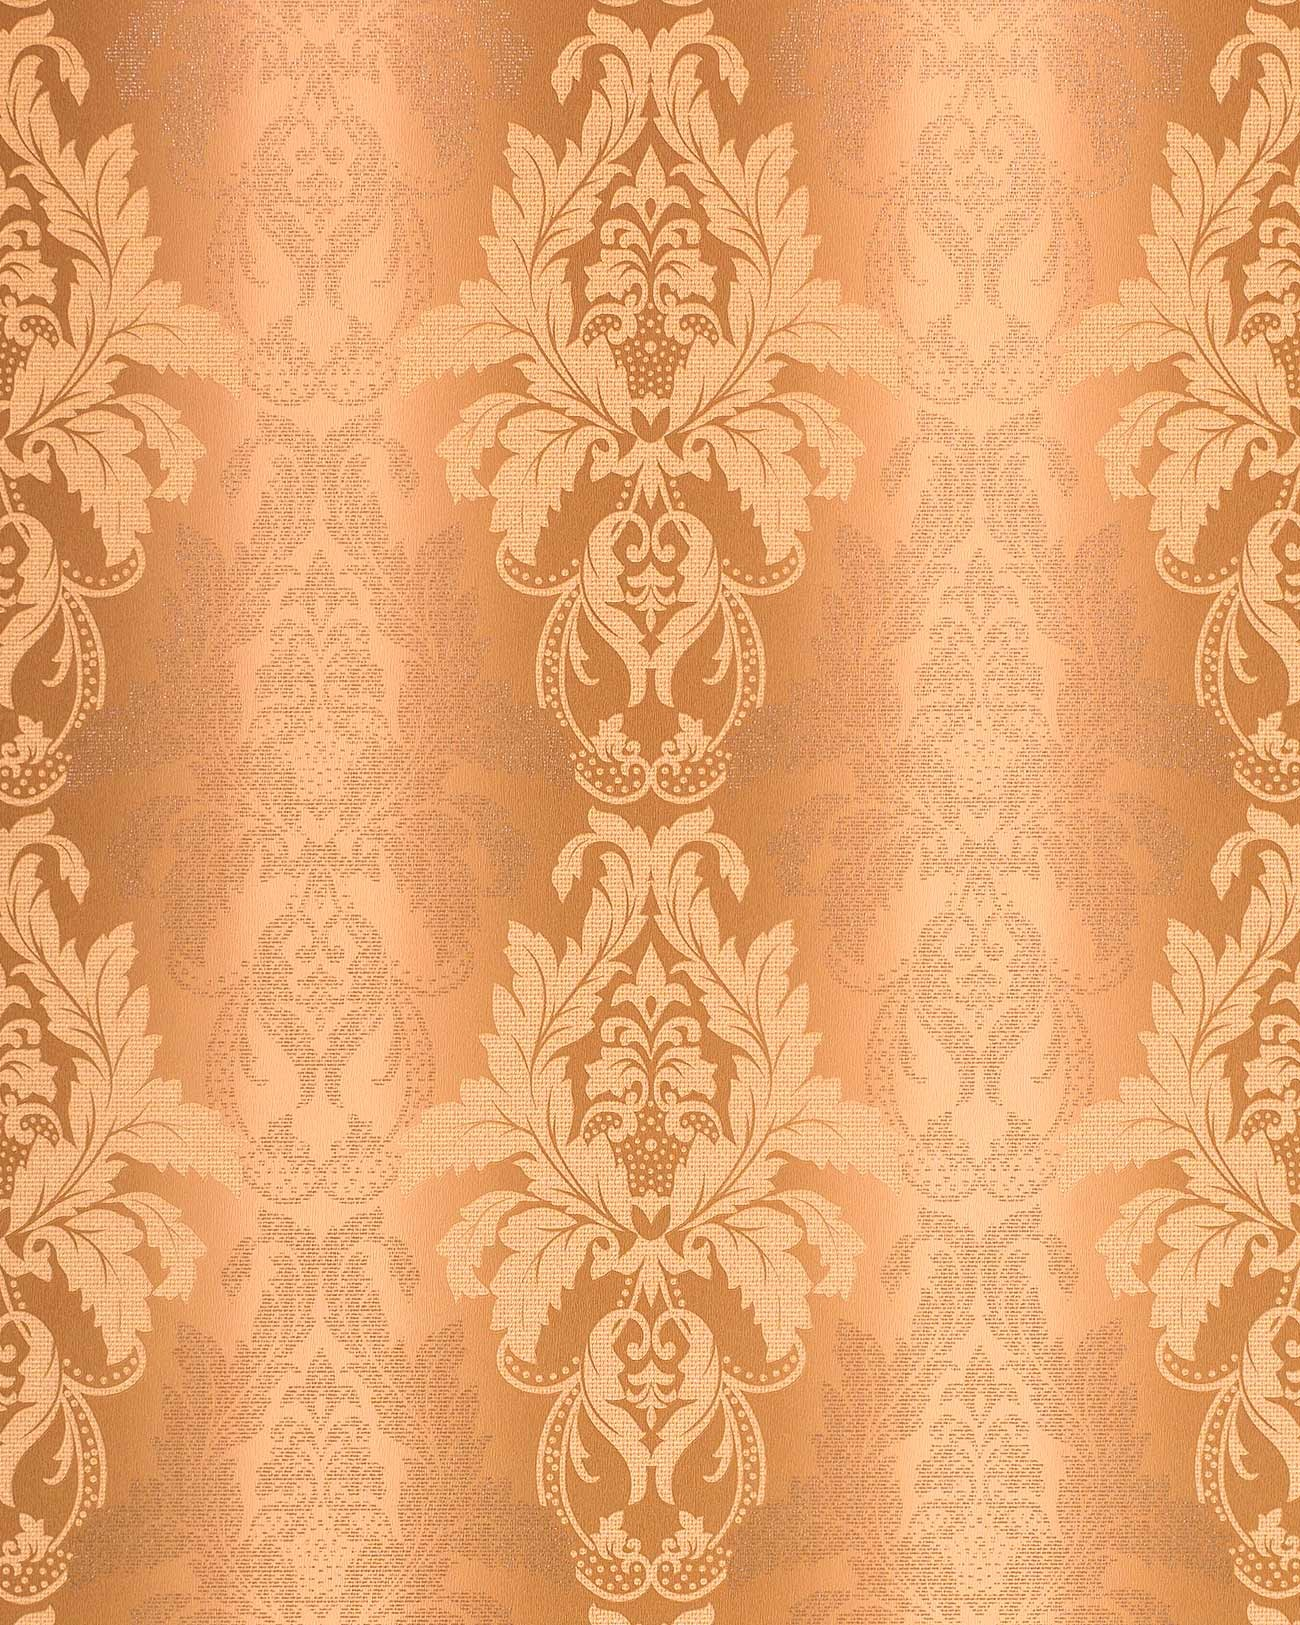 Edem 770 32 luxury 3d embossed damask barock wallpaper - Barock wallpaper ...